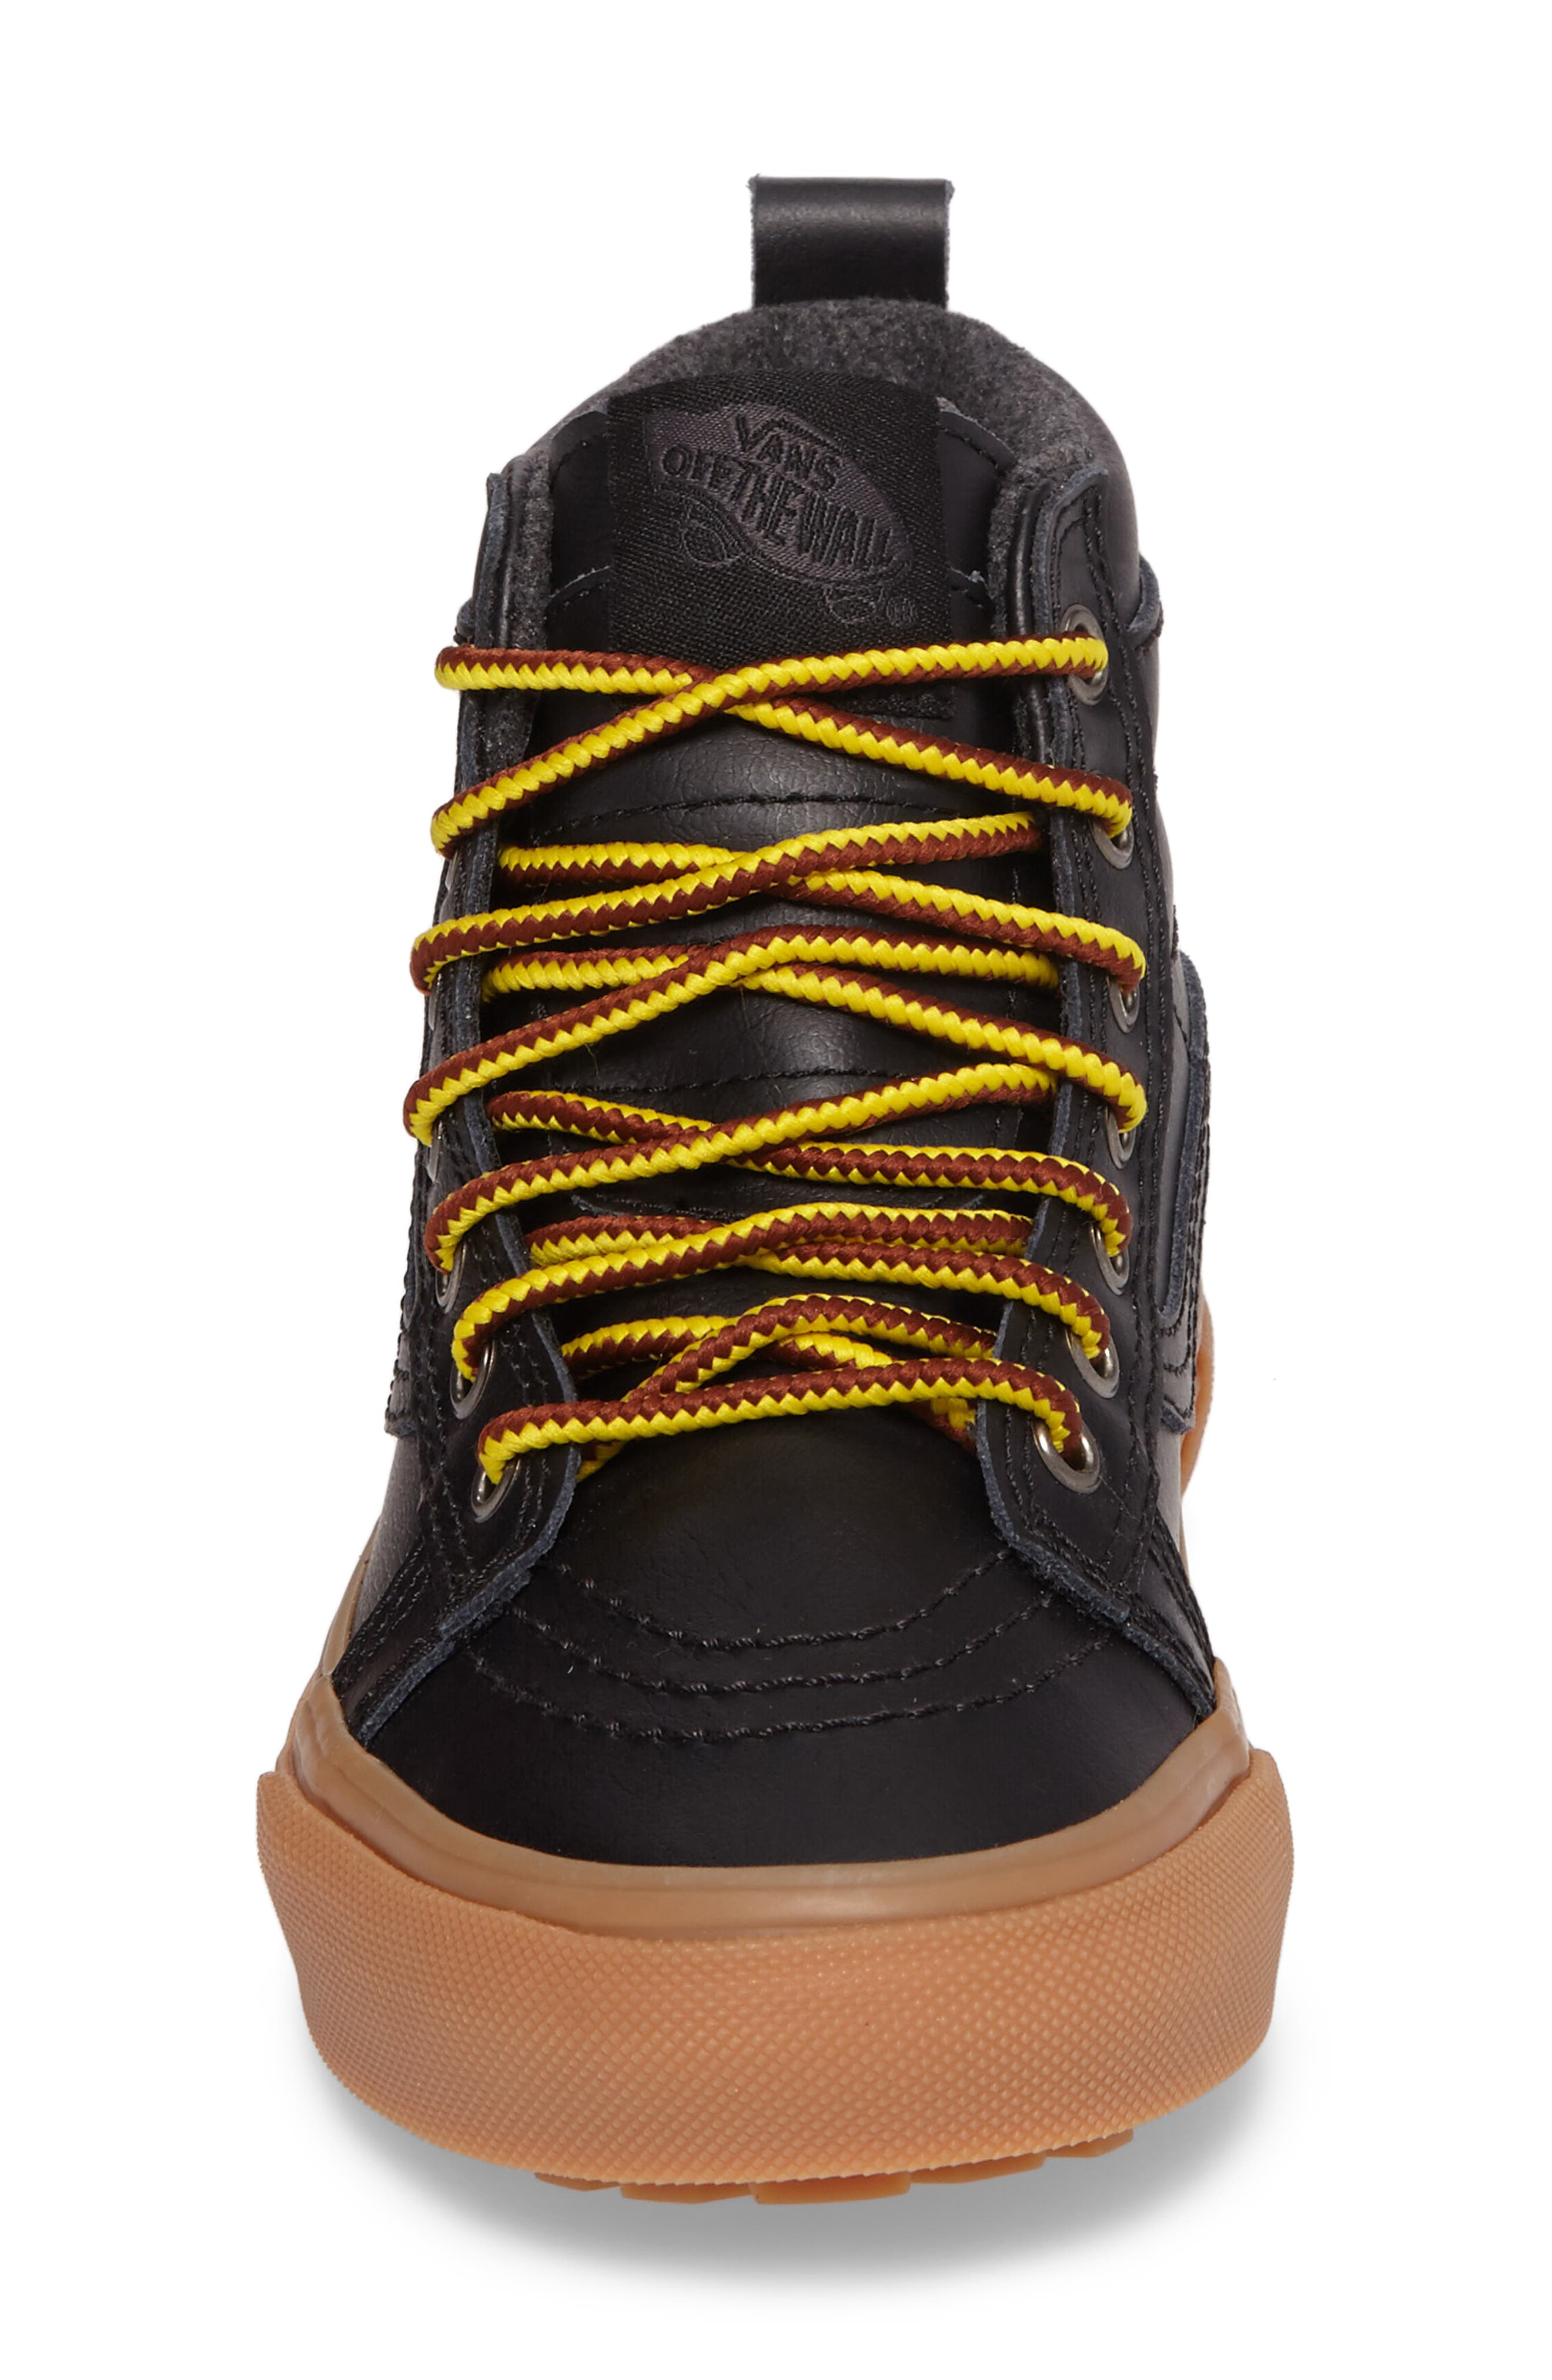 SK8-Hi Sneaker,                             Alternate thumbnail 27, color,